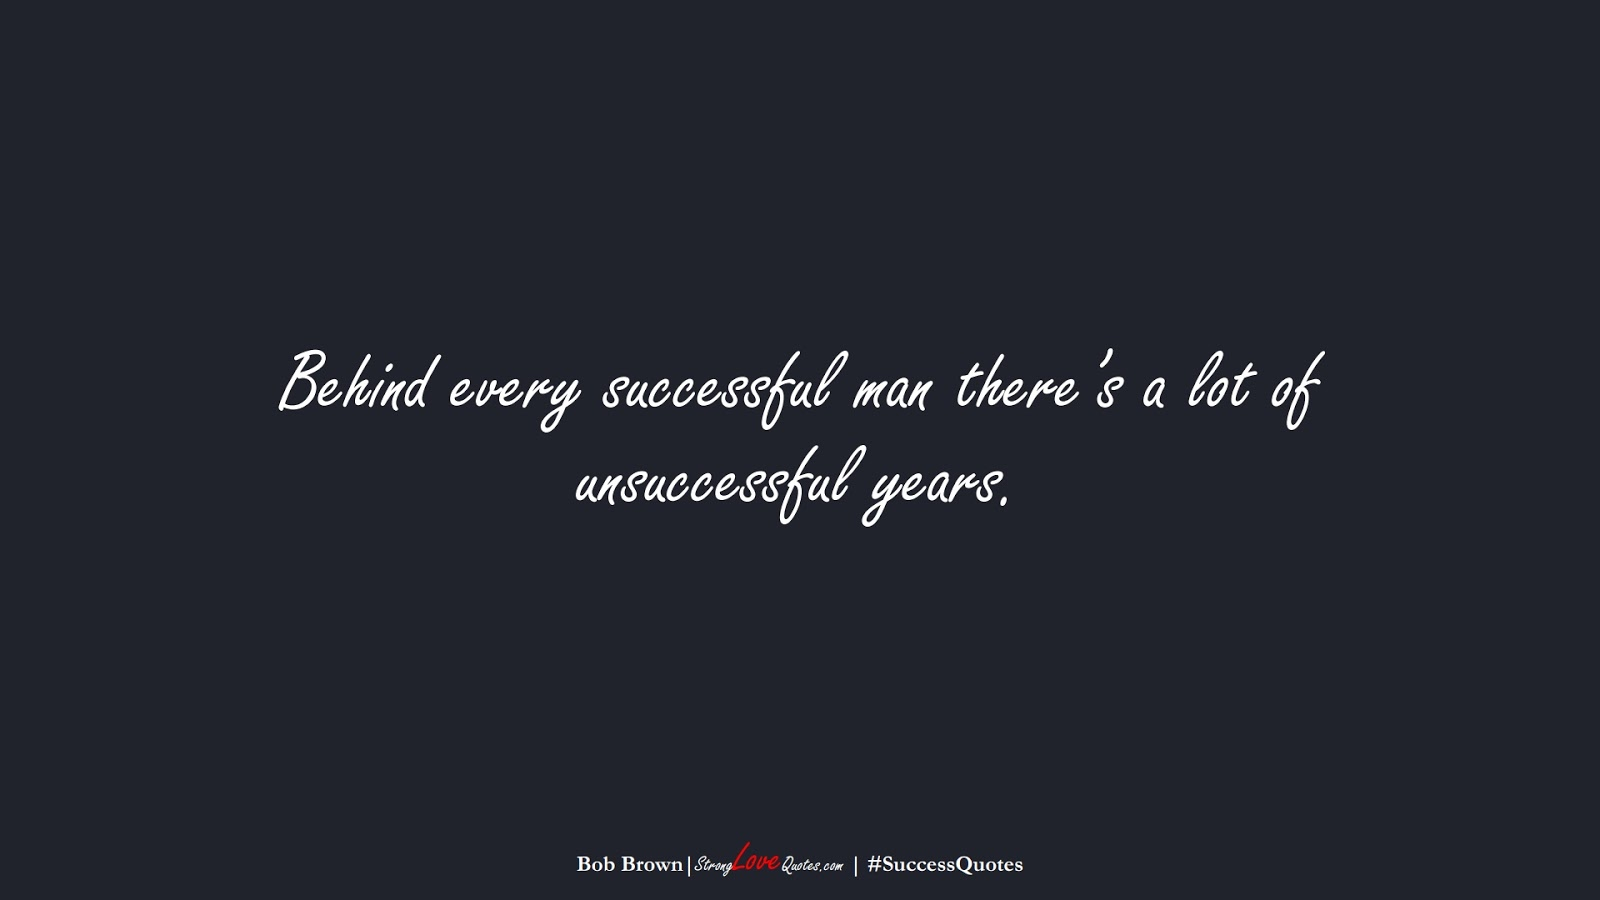 Behind every successful man there's a lot of unsuccessful years. (Bob Brown);  #SuccessQuotes